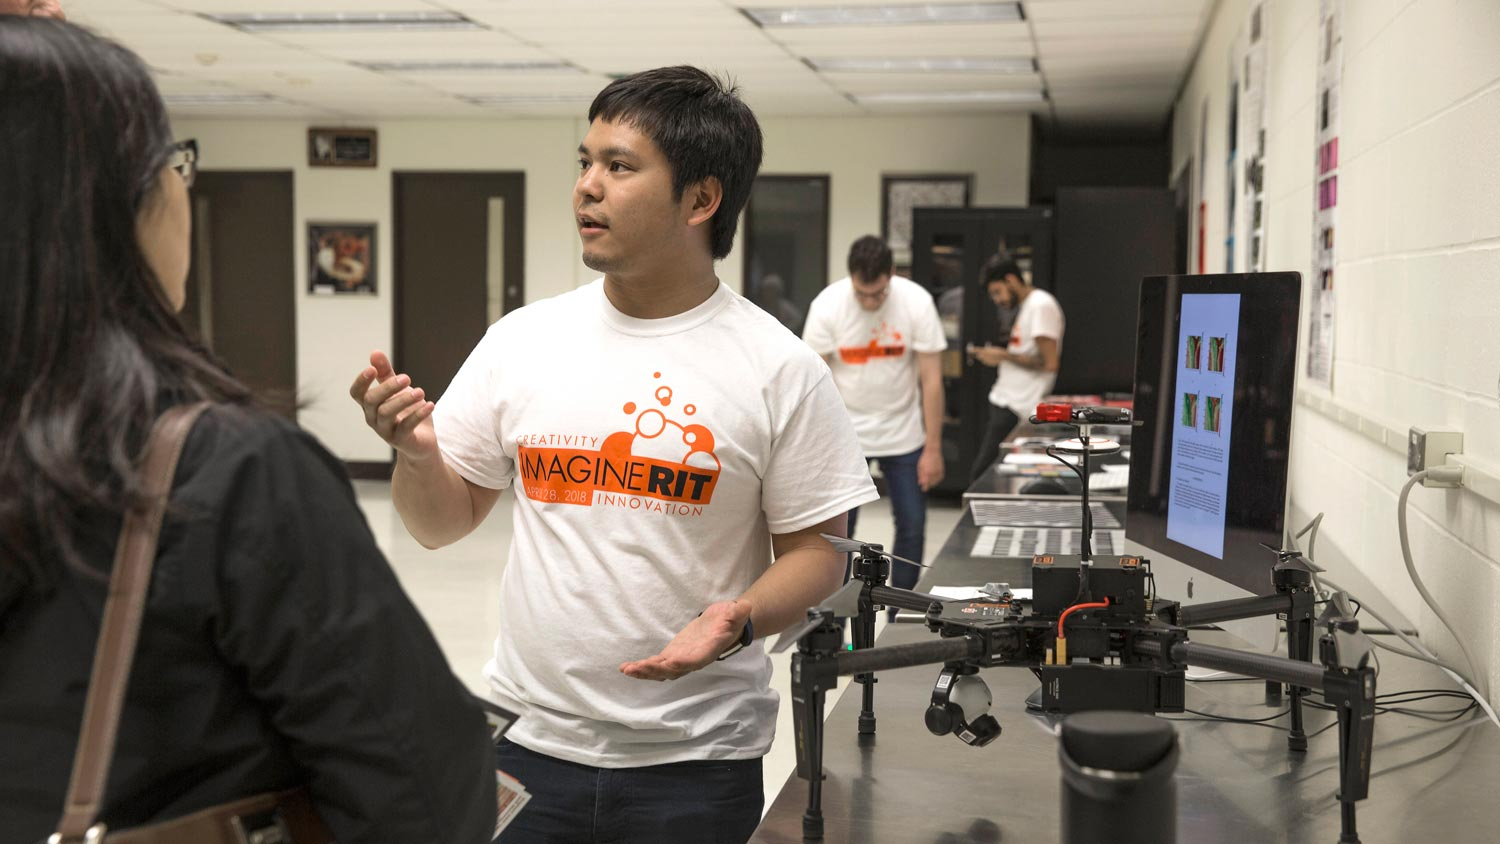 Student demonstrating his drone at Imagine RIT